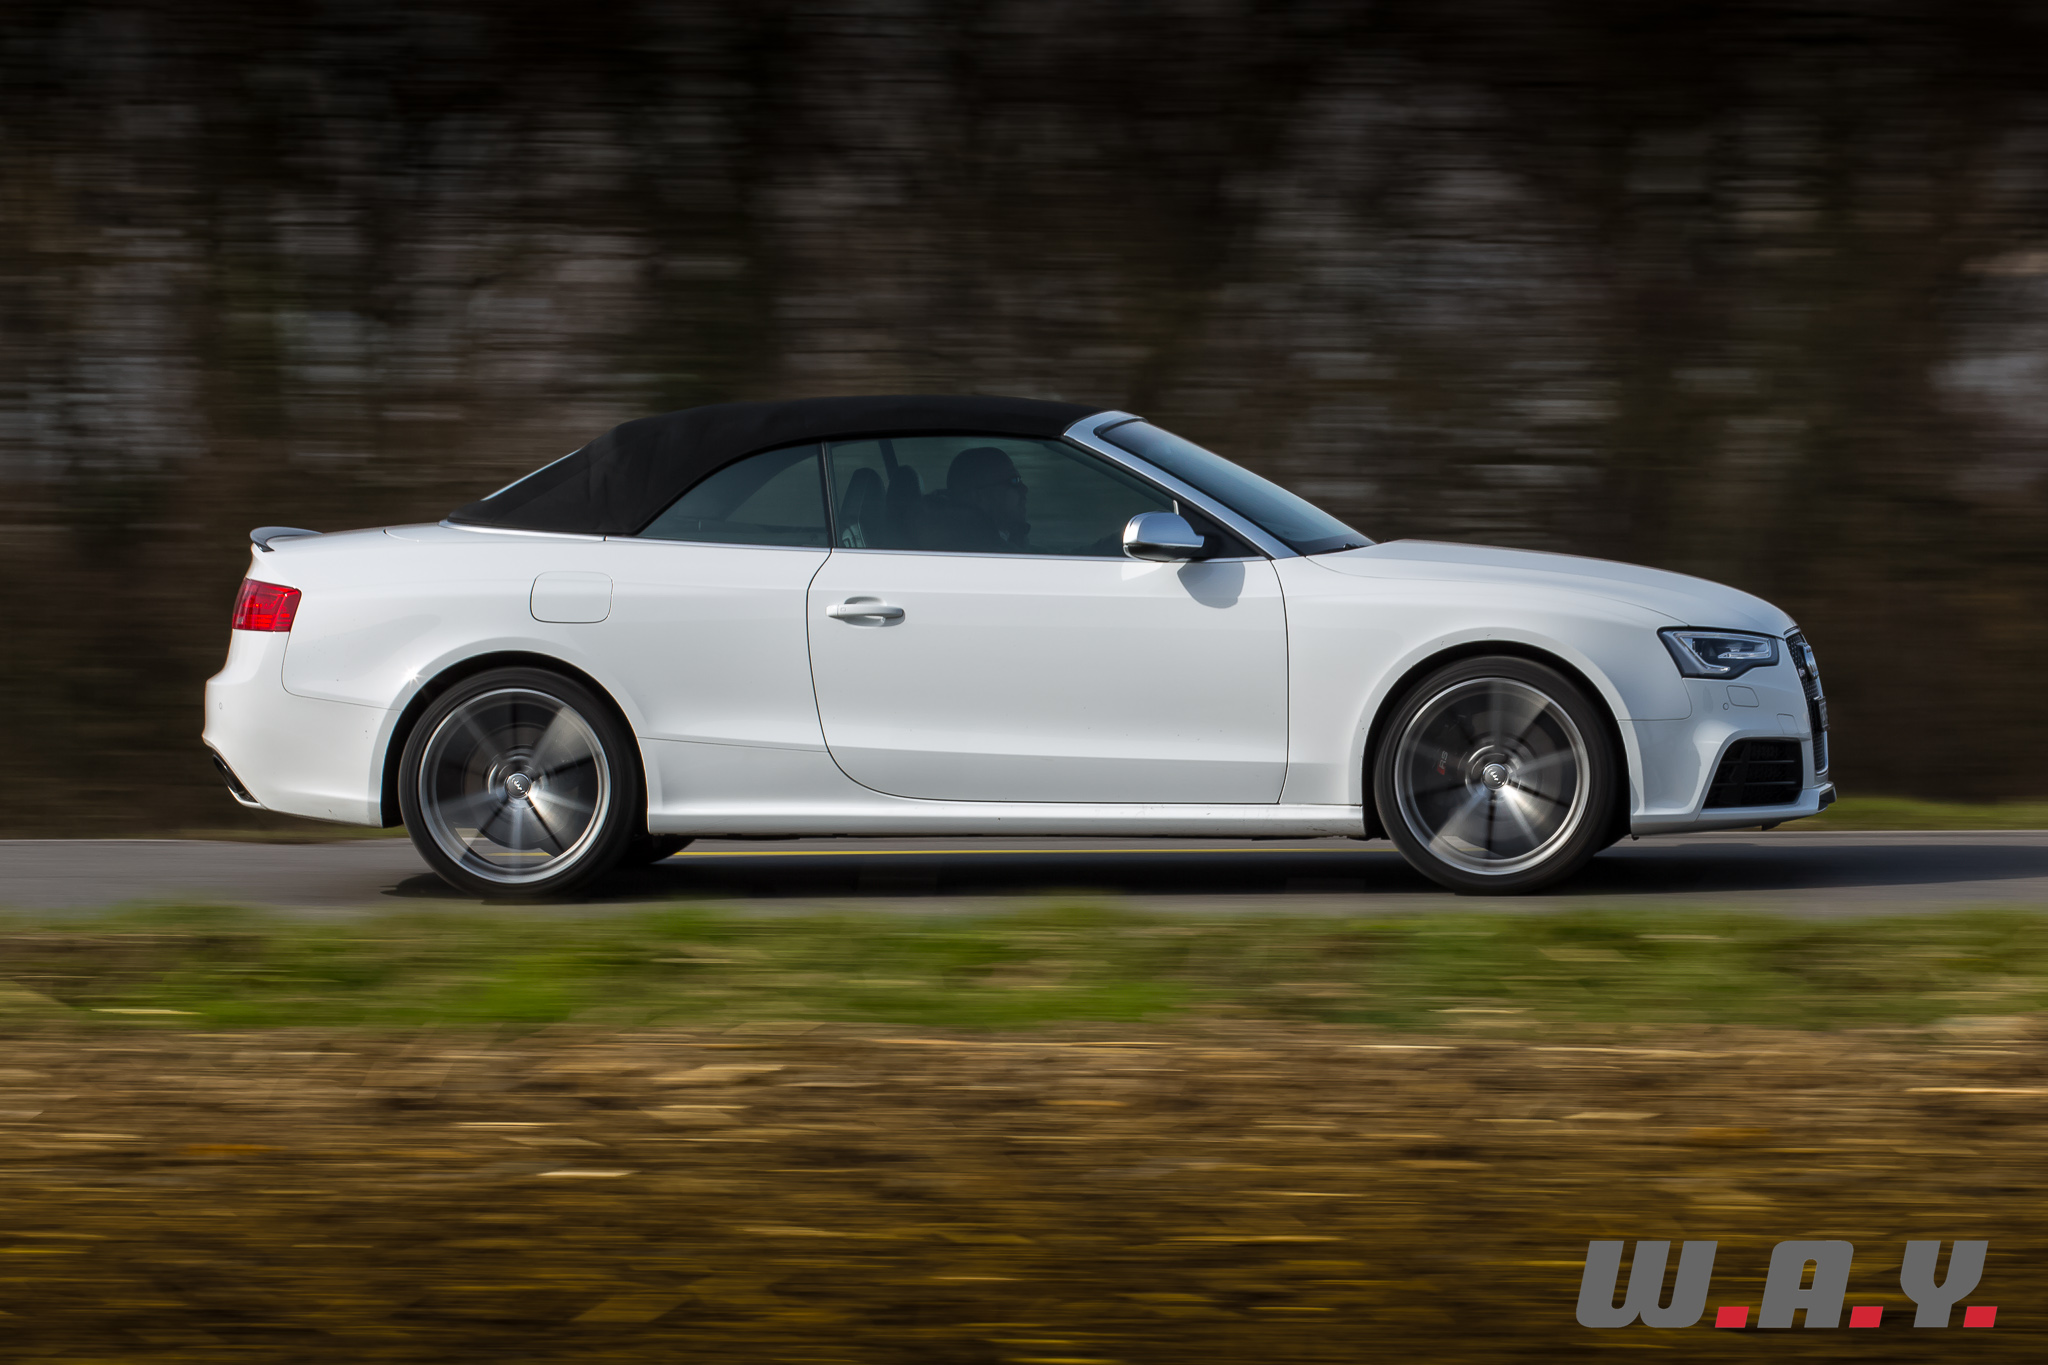 AudiRS5Cabriolet-24